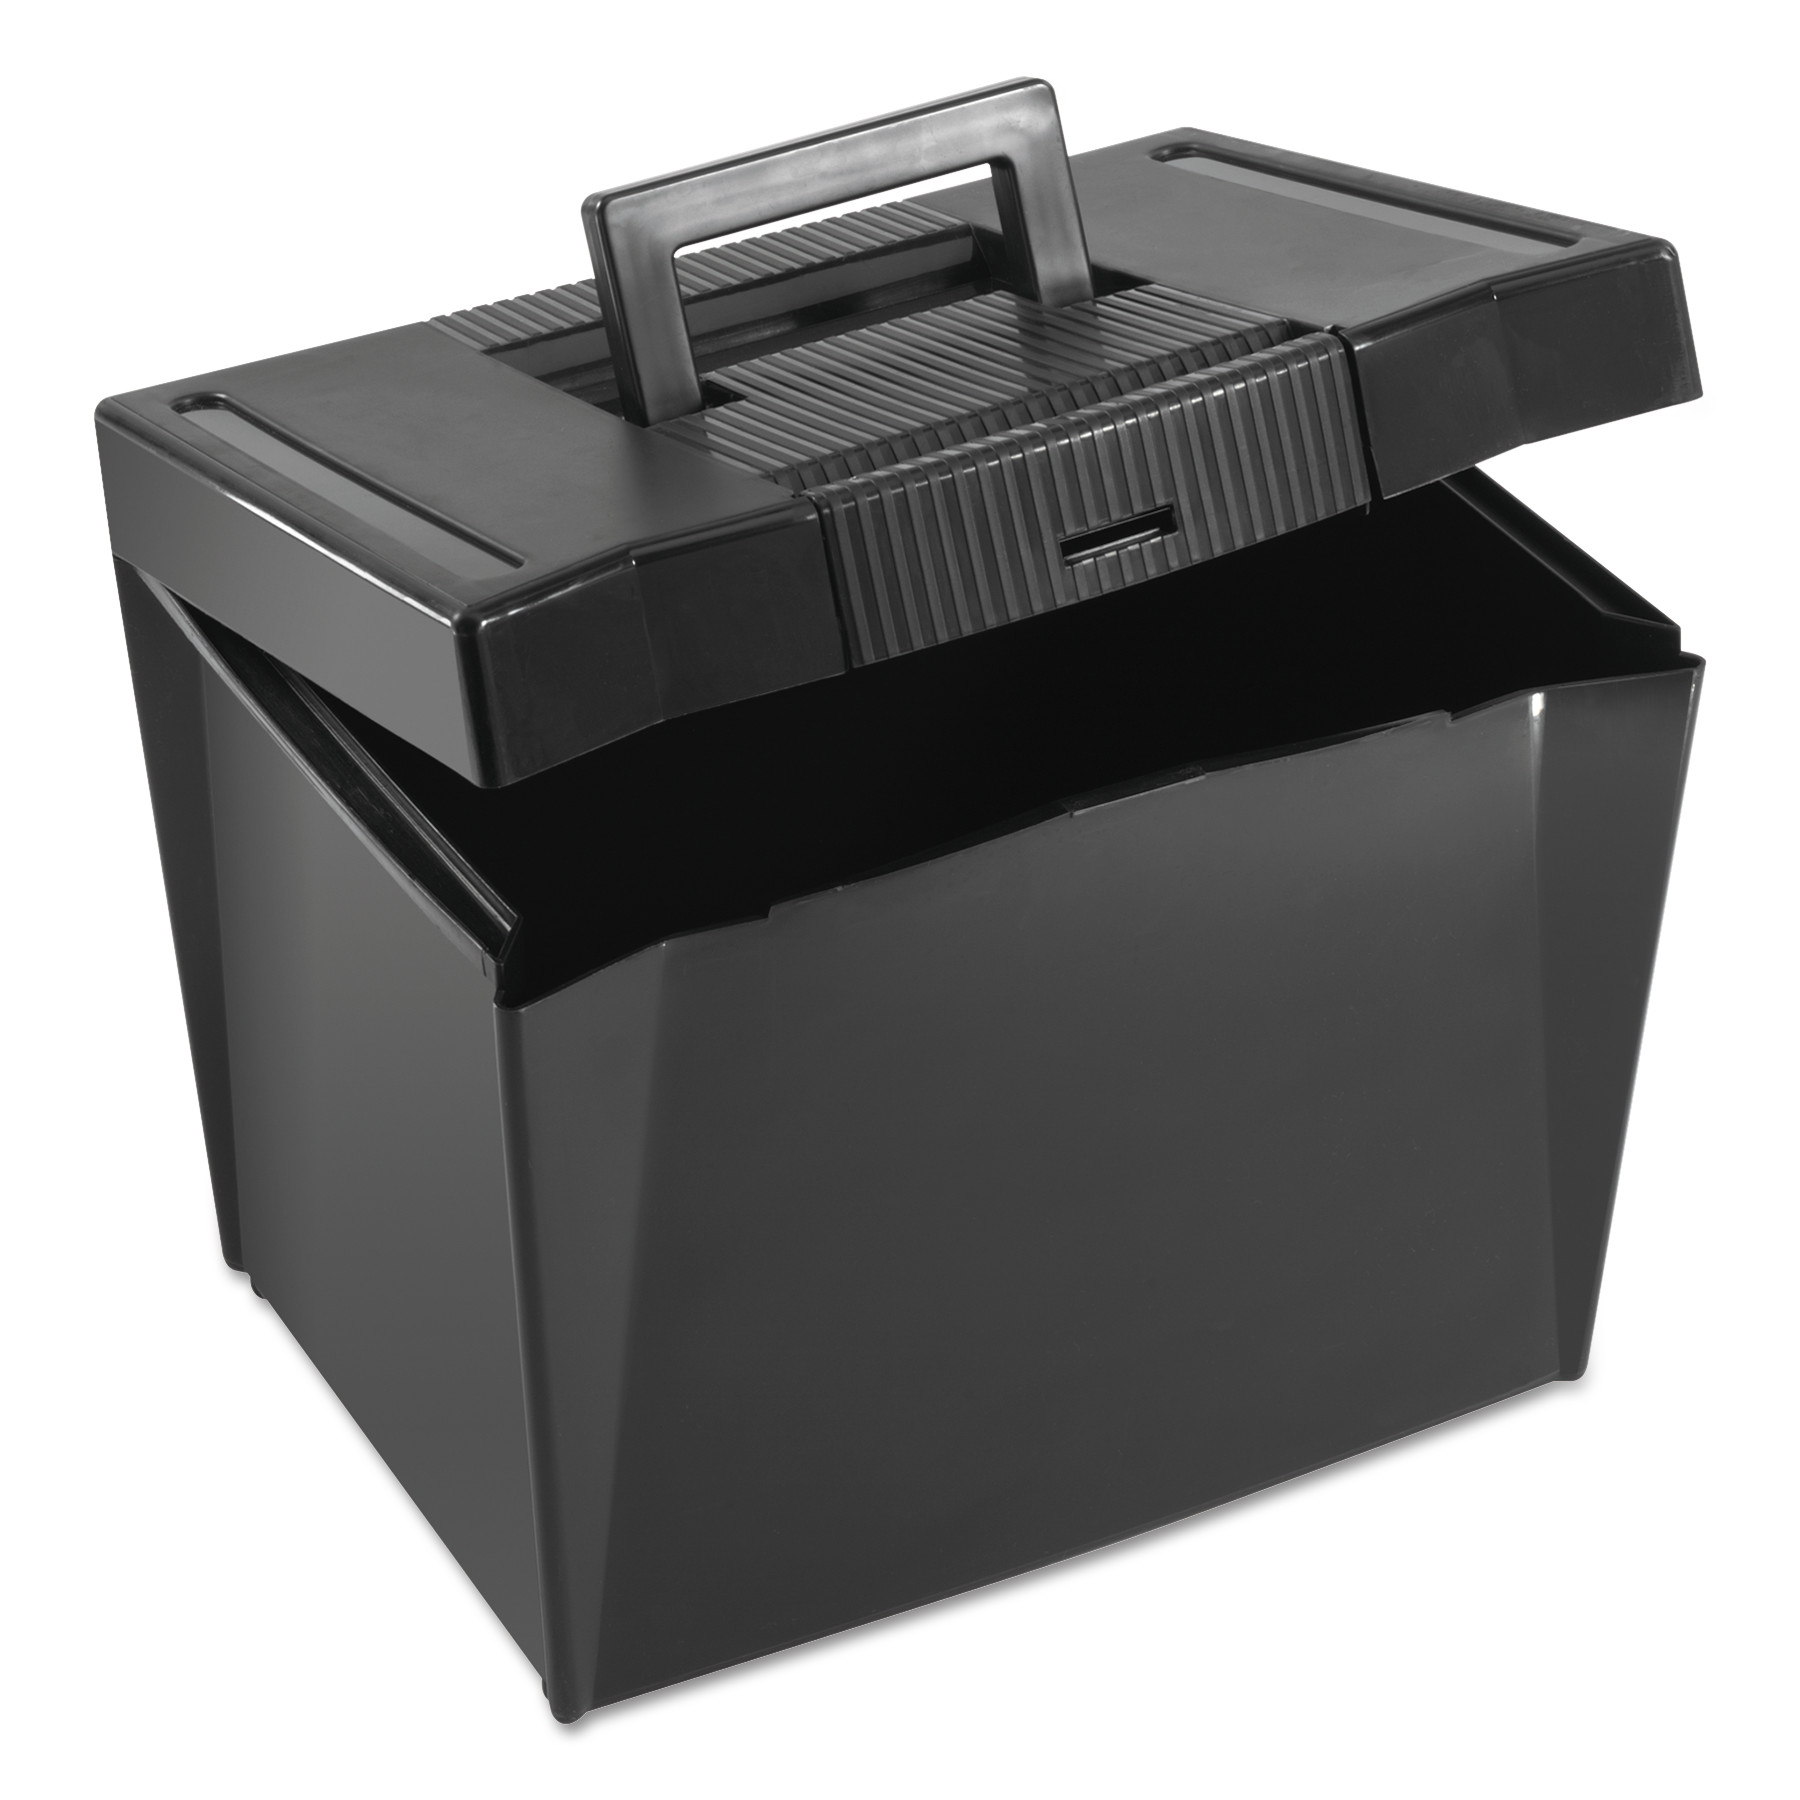 Pendaflex Economy File Box, Black, 1 Each (Quantity)